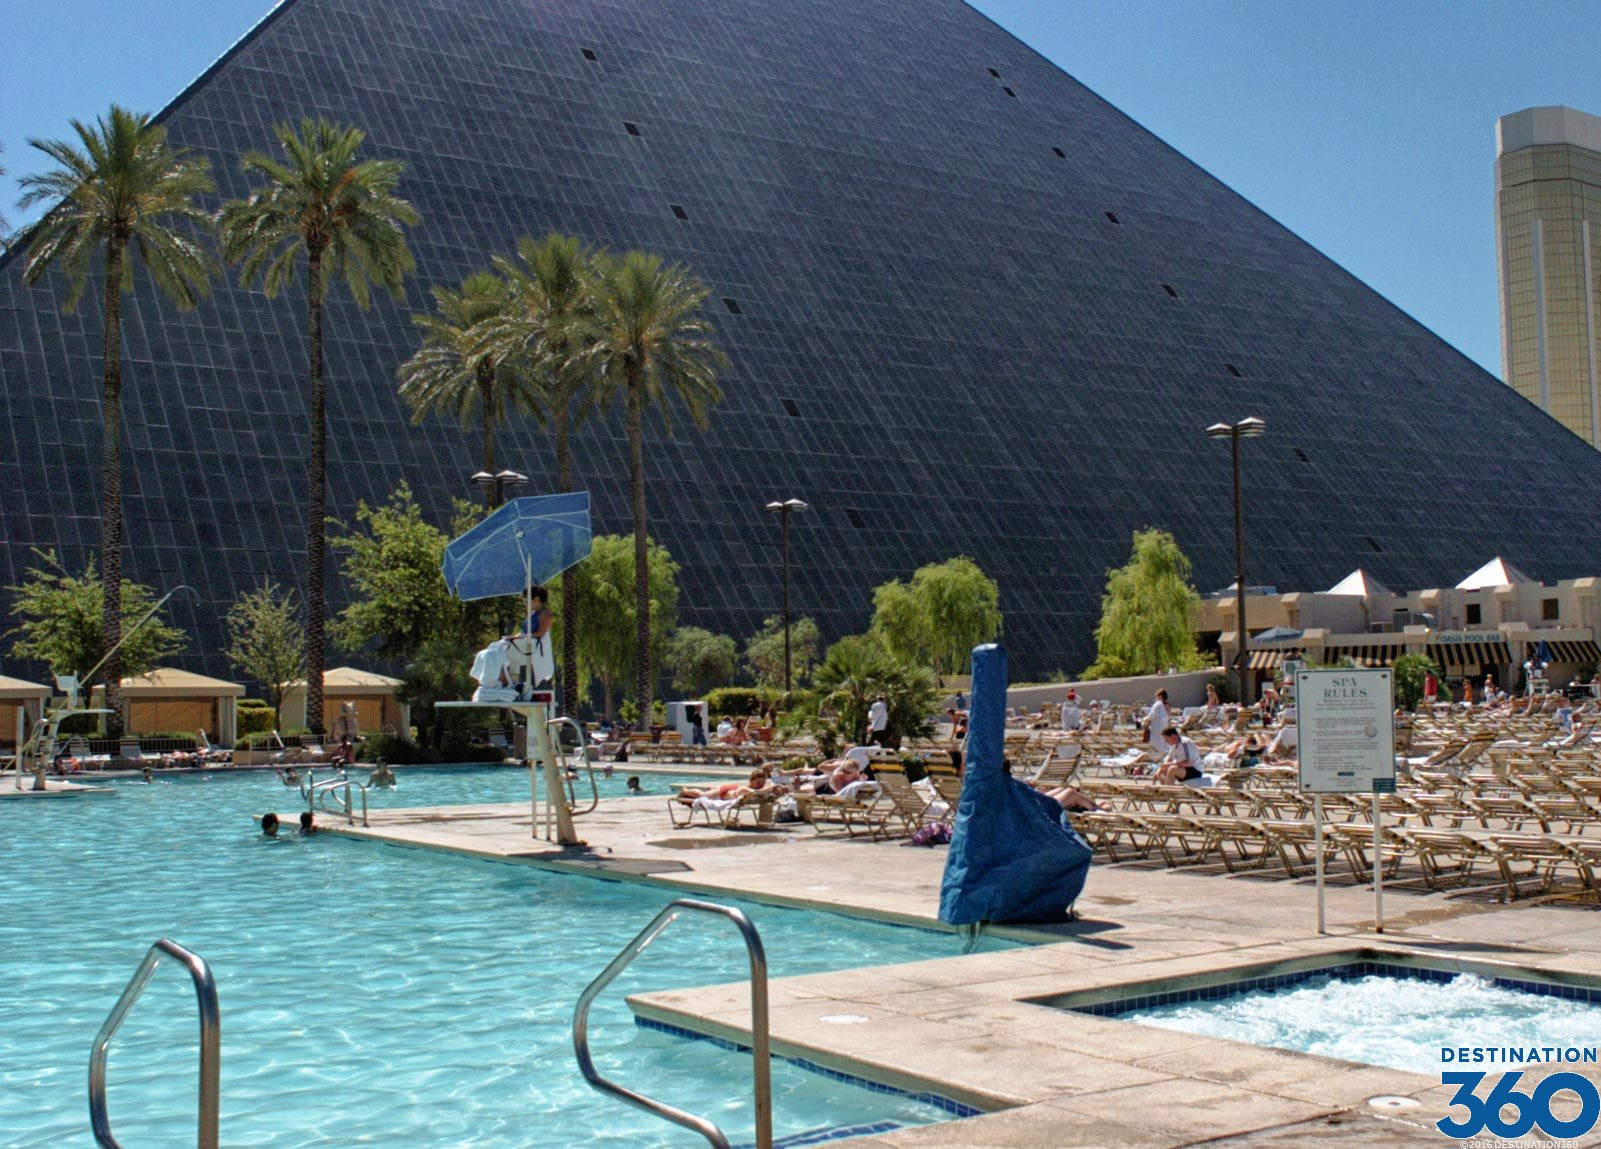 Luxor hotel and casino swimming pool red hot poker up - Luxor hotel las vegas swimming pool ...